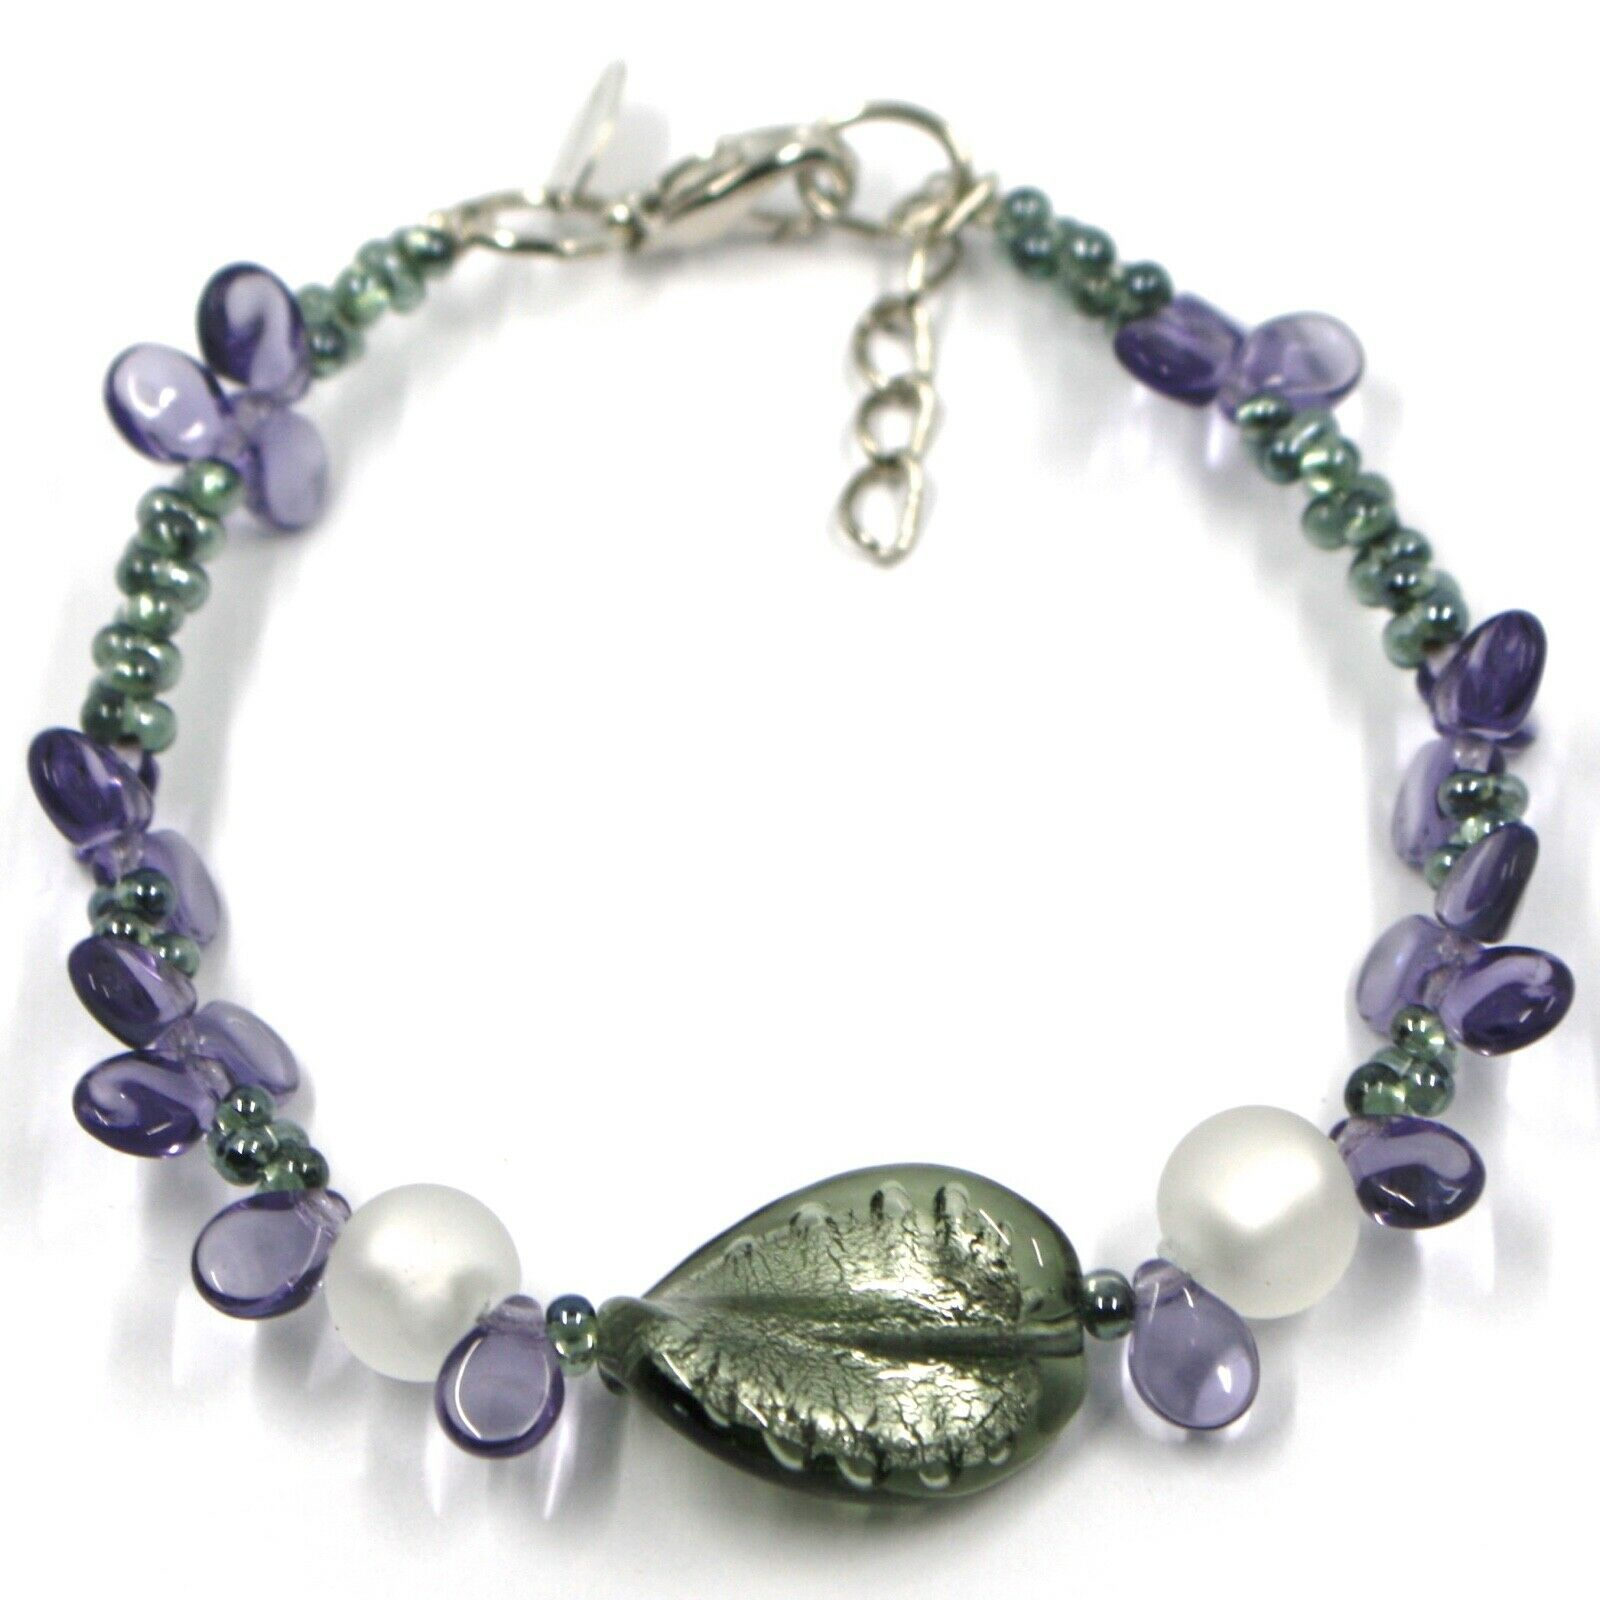 BRACELET PURPLE PETALS DROPS, SATIN SILVER SPHERE SPIRAL WAVE MURANO GLASS ITALY